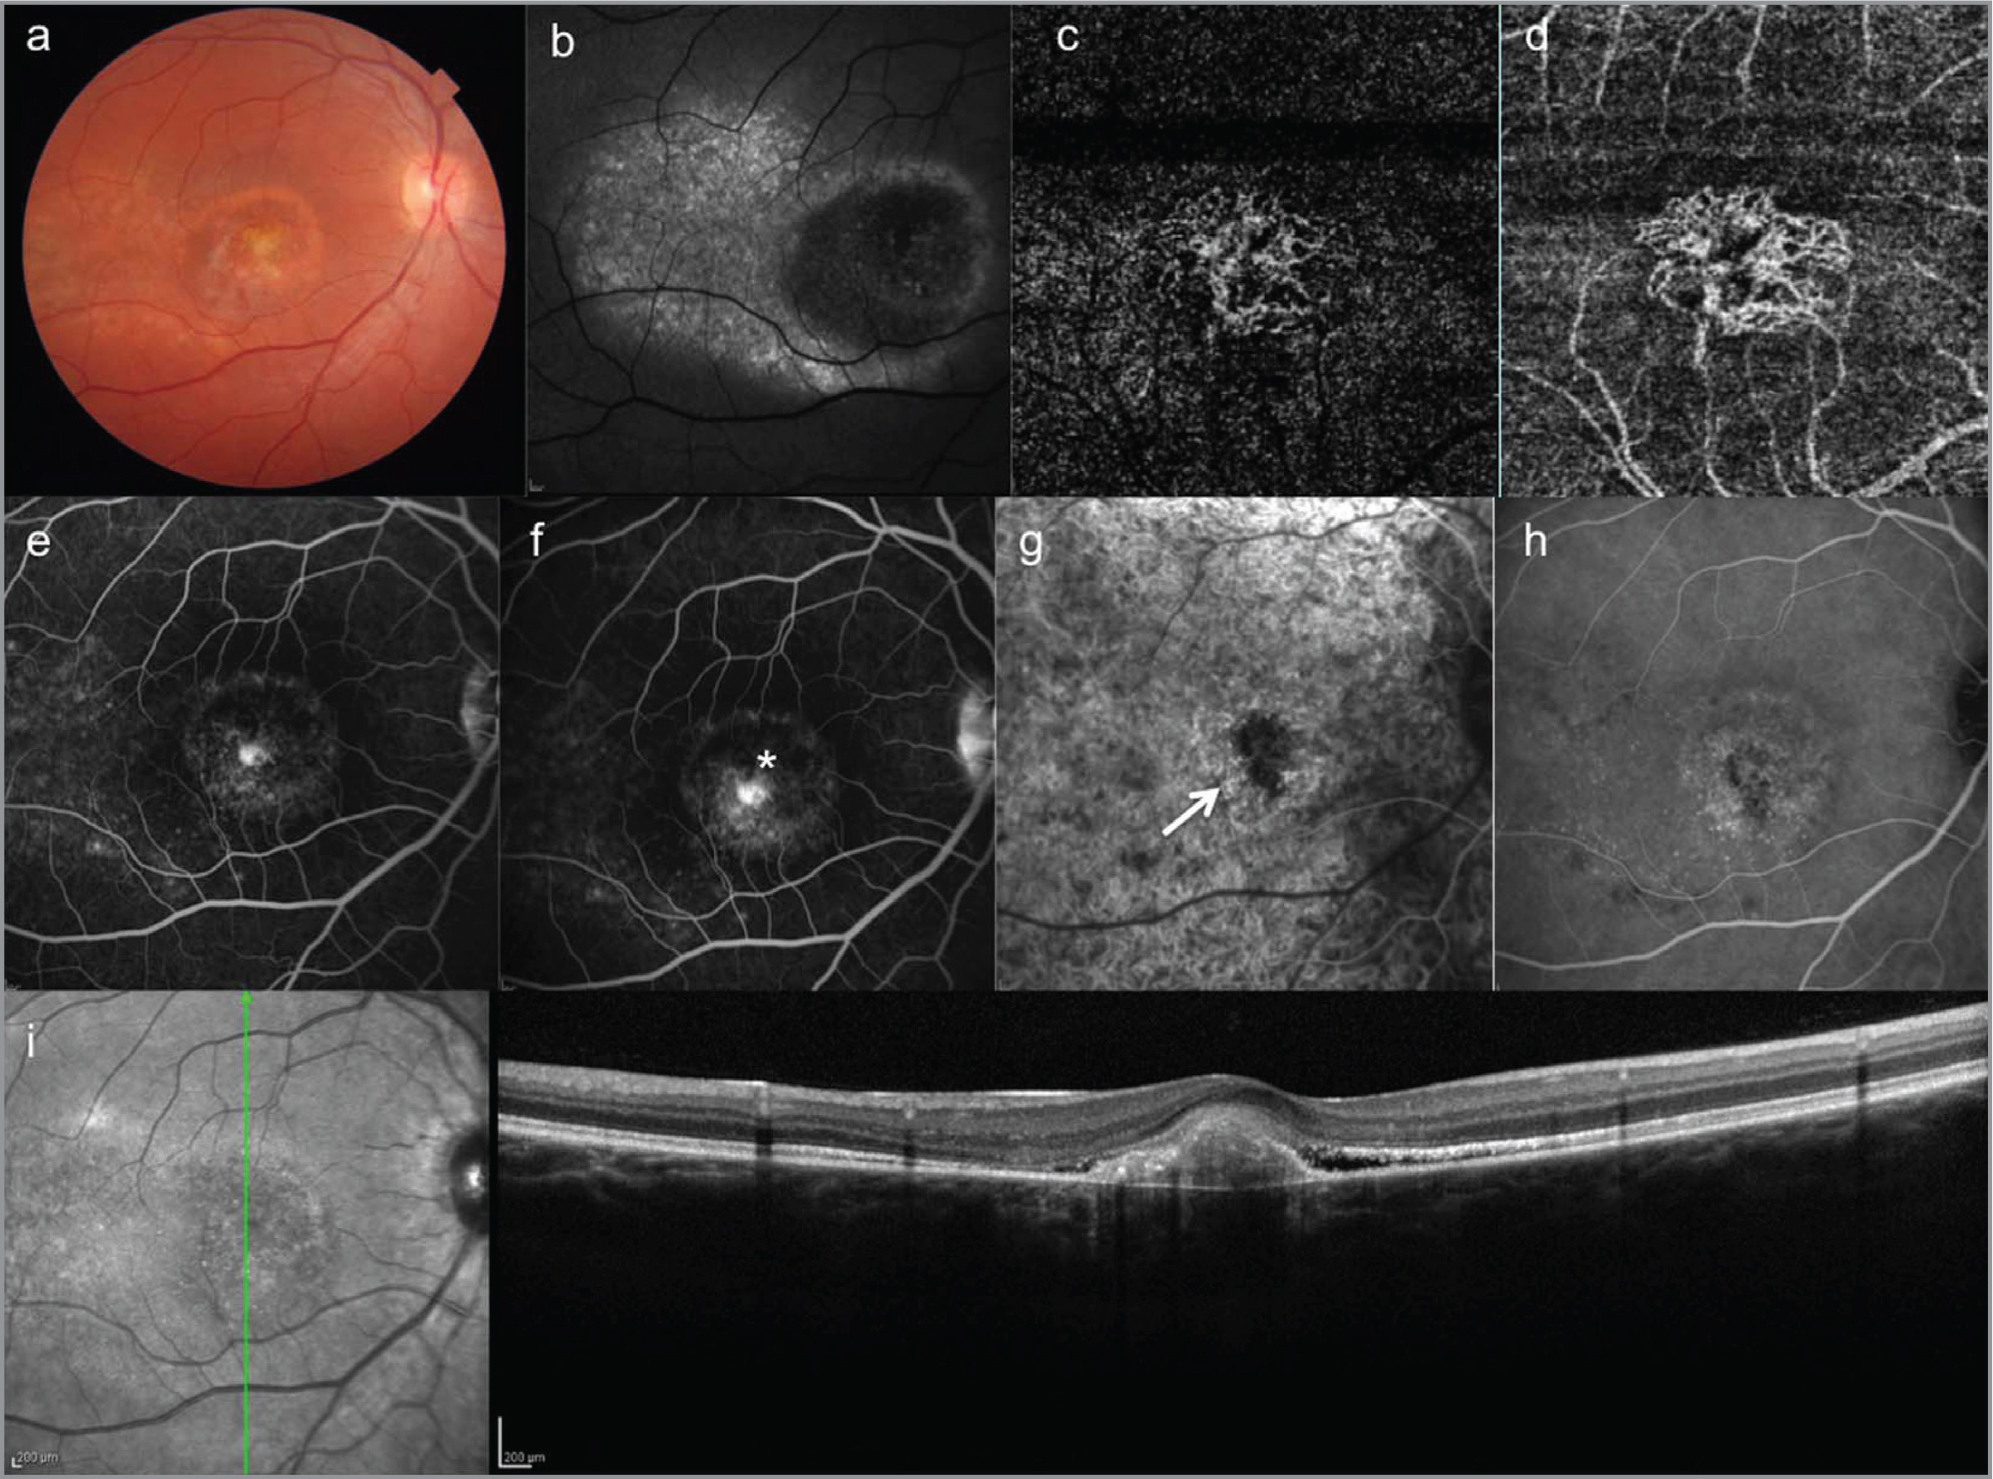 Case 1. Multimodal imaging of autosomal recessive bestrophinopathy of the right eye at presentation. (a) Color fundus photograph. (b) Fundus autofluorescence (FAF) shows a foveal hyperautofluorescent ring with speckled hyper-FAF material temporal to the fovea. (c, d) Optical coherence tomography (OCT) angiography of the outer retina (c) and choriocapillaris (d) shows the presence of the choroidal neovascularization (CNV). (e, f) Fundus fluorescein angiography shows early hyperfluorescence (e) with late leakage (asterisk) of fluorescein (f). (g, h) Indocyanine green angiography shows the presence of the neovascular network (arrow) in the early frame (g) and leakage of indocyanine in the late frame (h). (i) Spectral-domain OCT shows subfoveal ill-defined subretinal hyperreflective material.